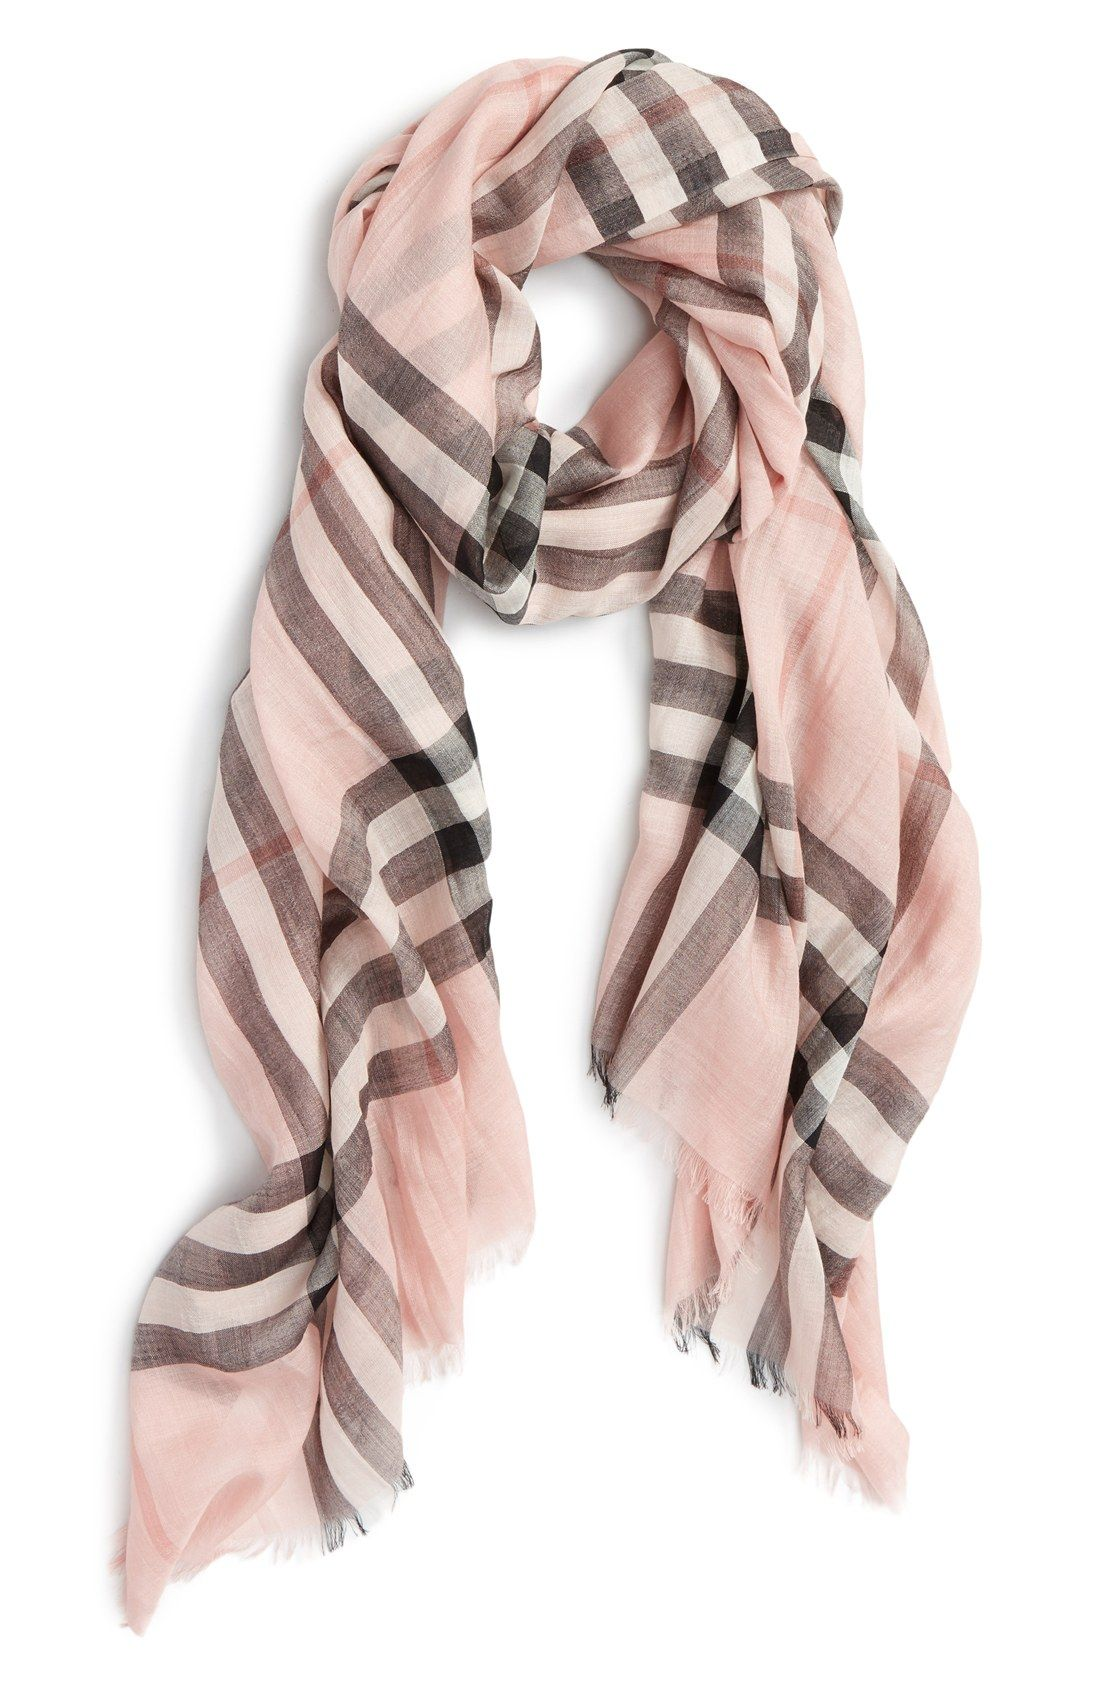 Burberry Giant Check Print Wool   Silk Scarf Cravate, Mode Automne Hiver,  Écharpe En ee2004b22c5